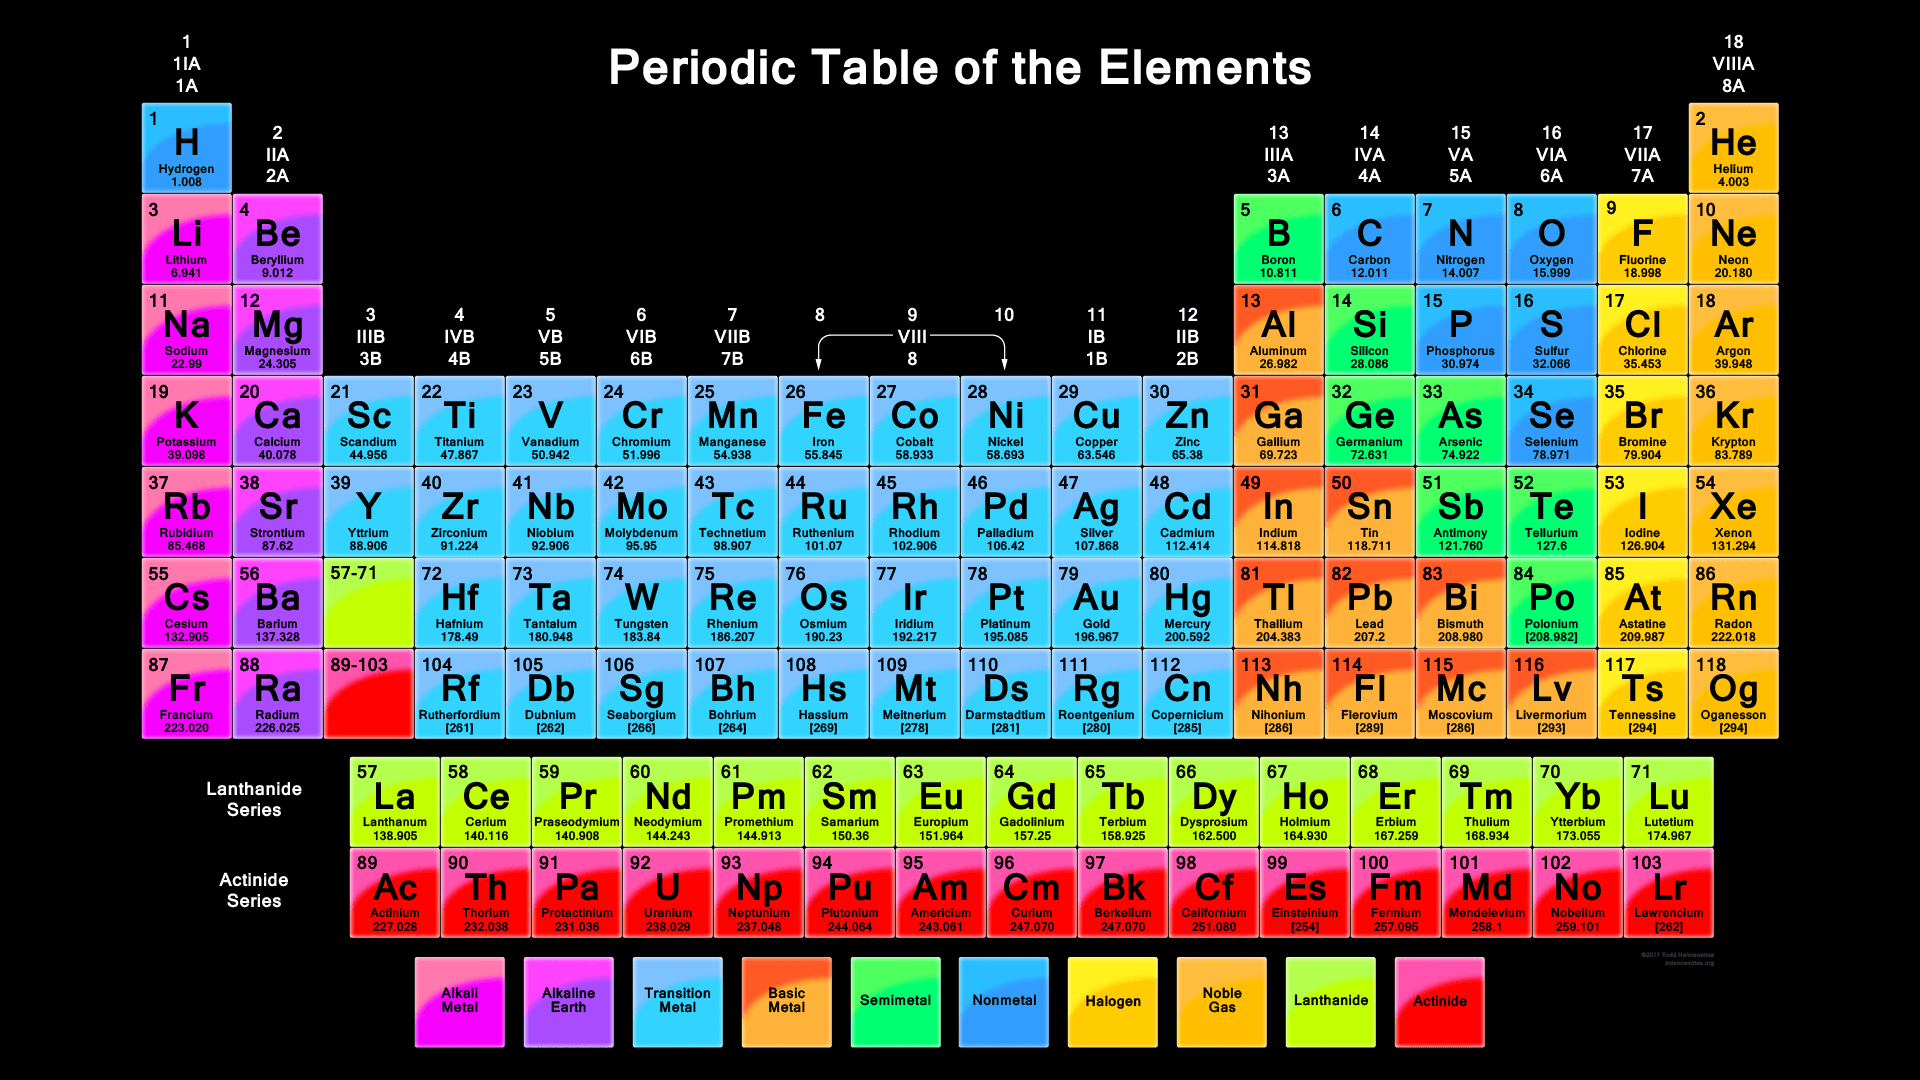 Periodic table pdf 2018 edition with 118 elements table on whitetable on black gamestrikefo Images